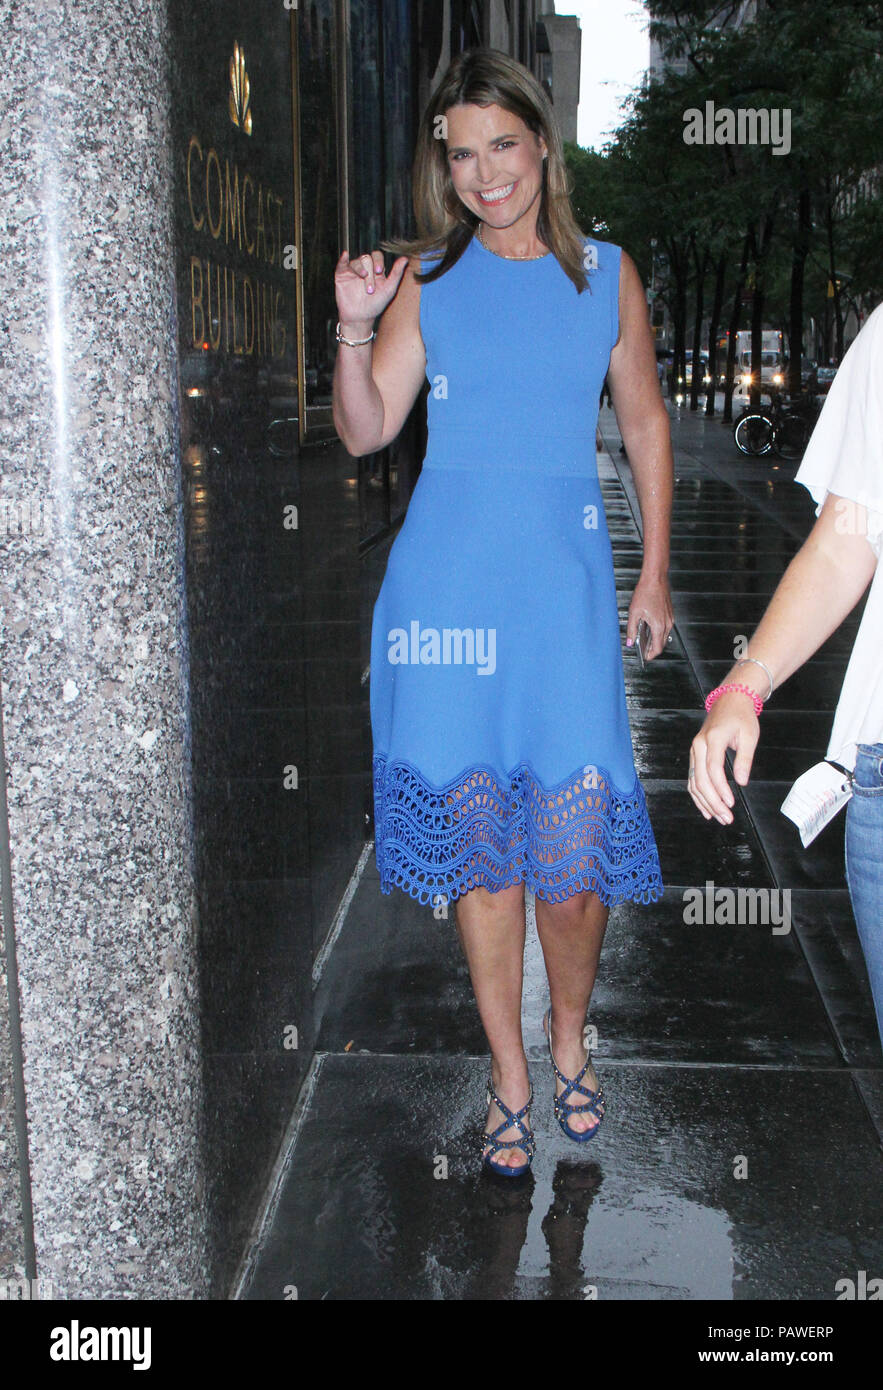 New York Ny July 25 Savannah Guthrie Seen At Megyn Kelly Today In New York City On July 25 2018 Credit Rw Mediapunch Stock Photo Alamy